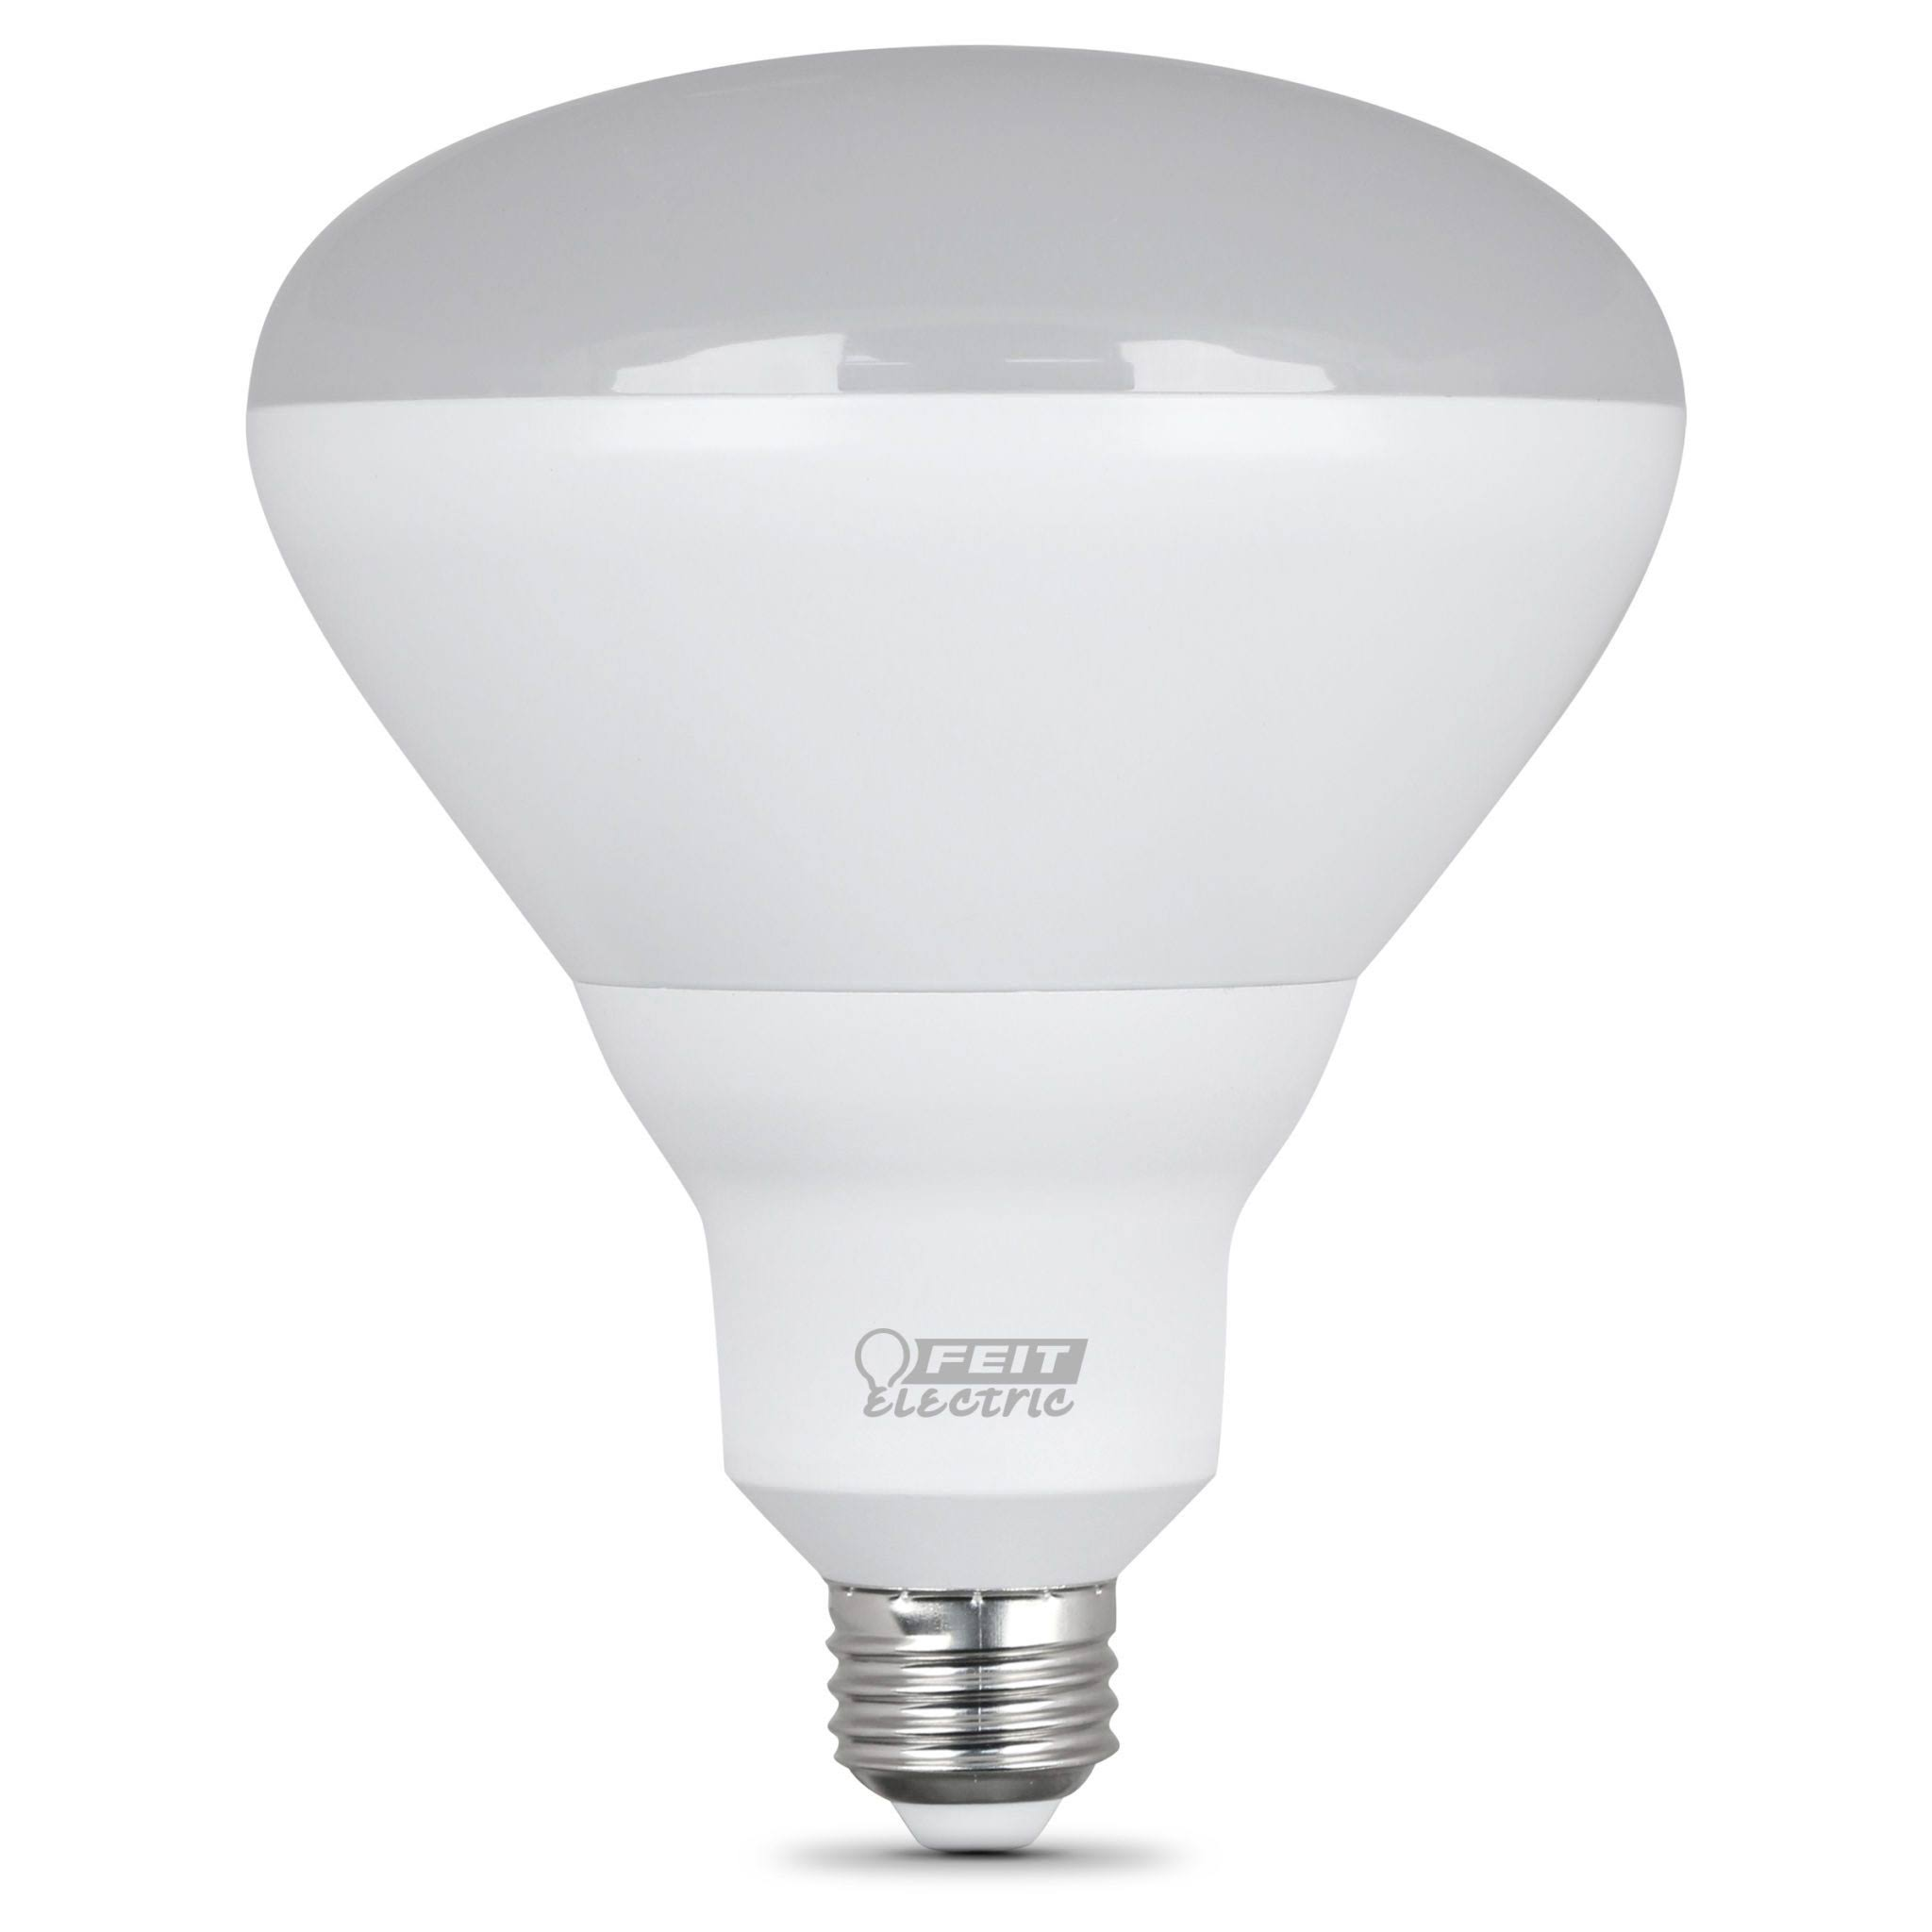 Feit Electric BR40 LED Bulb - Soft White, 15.5 W